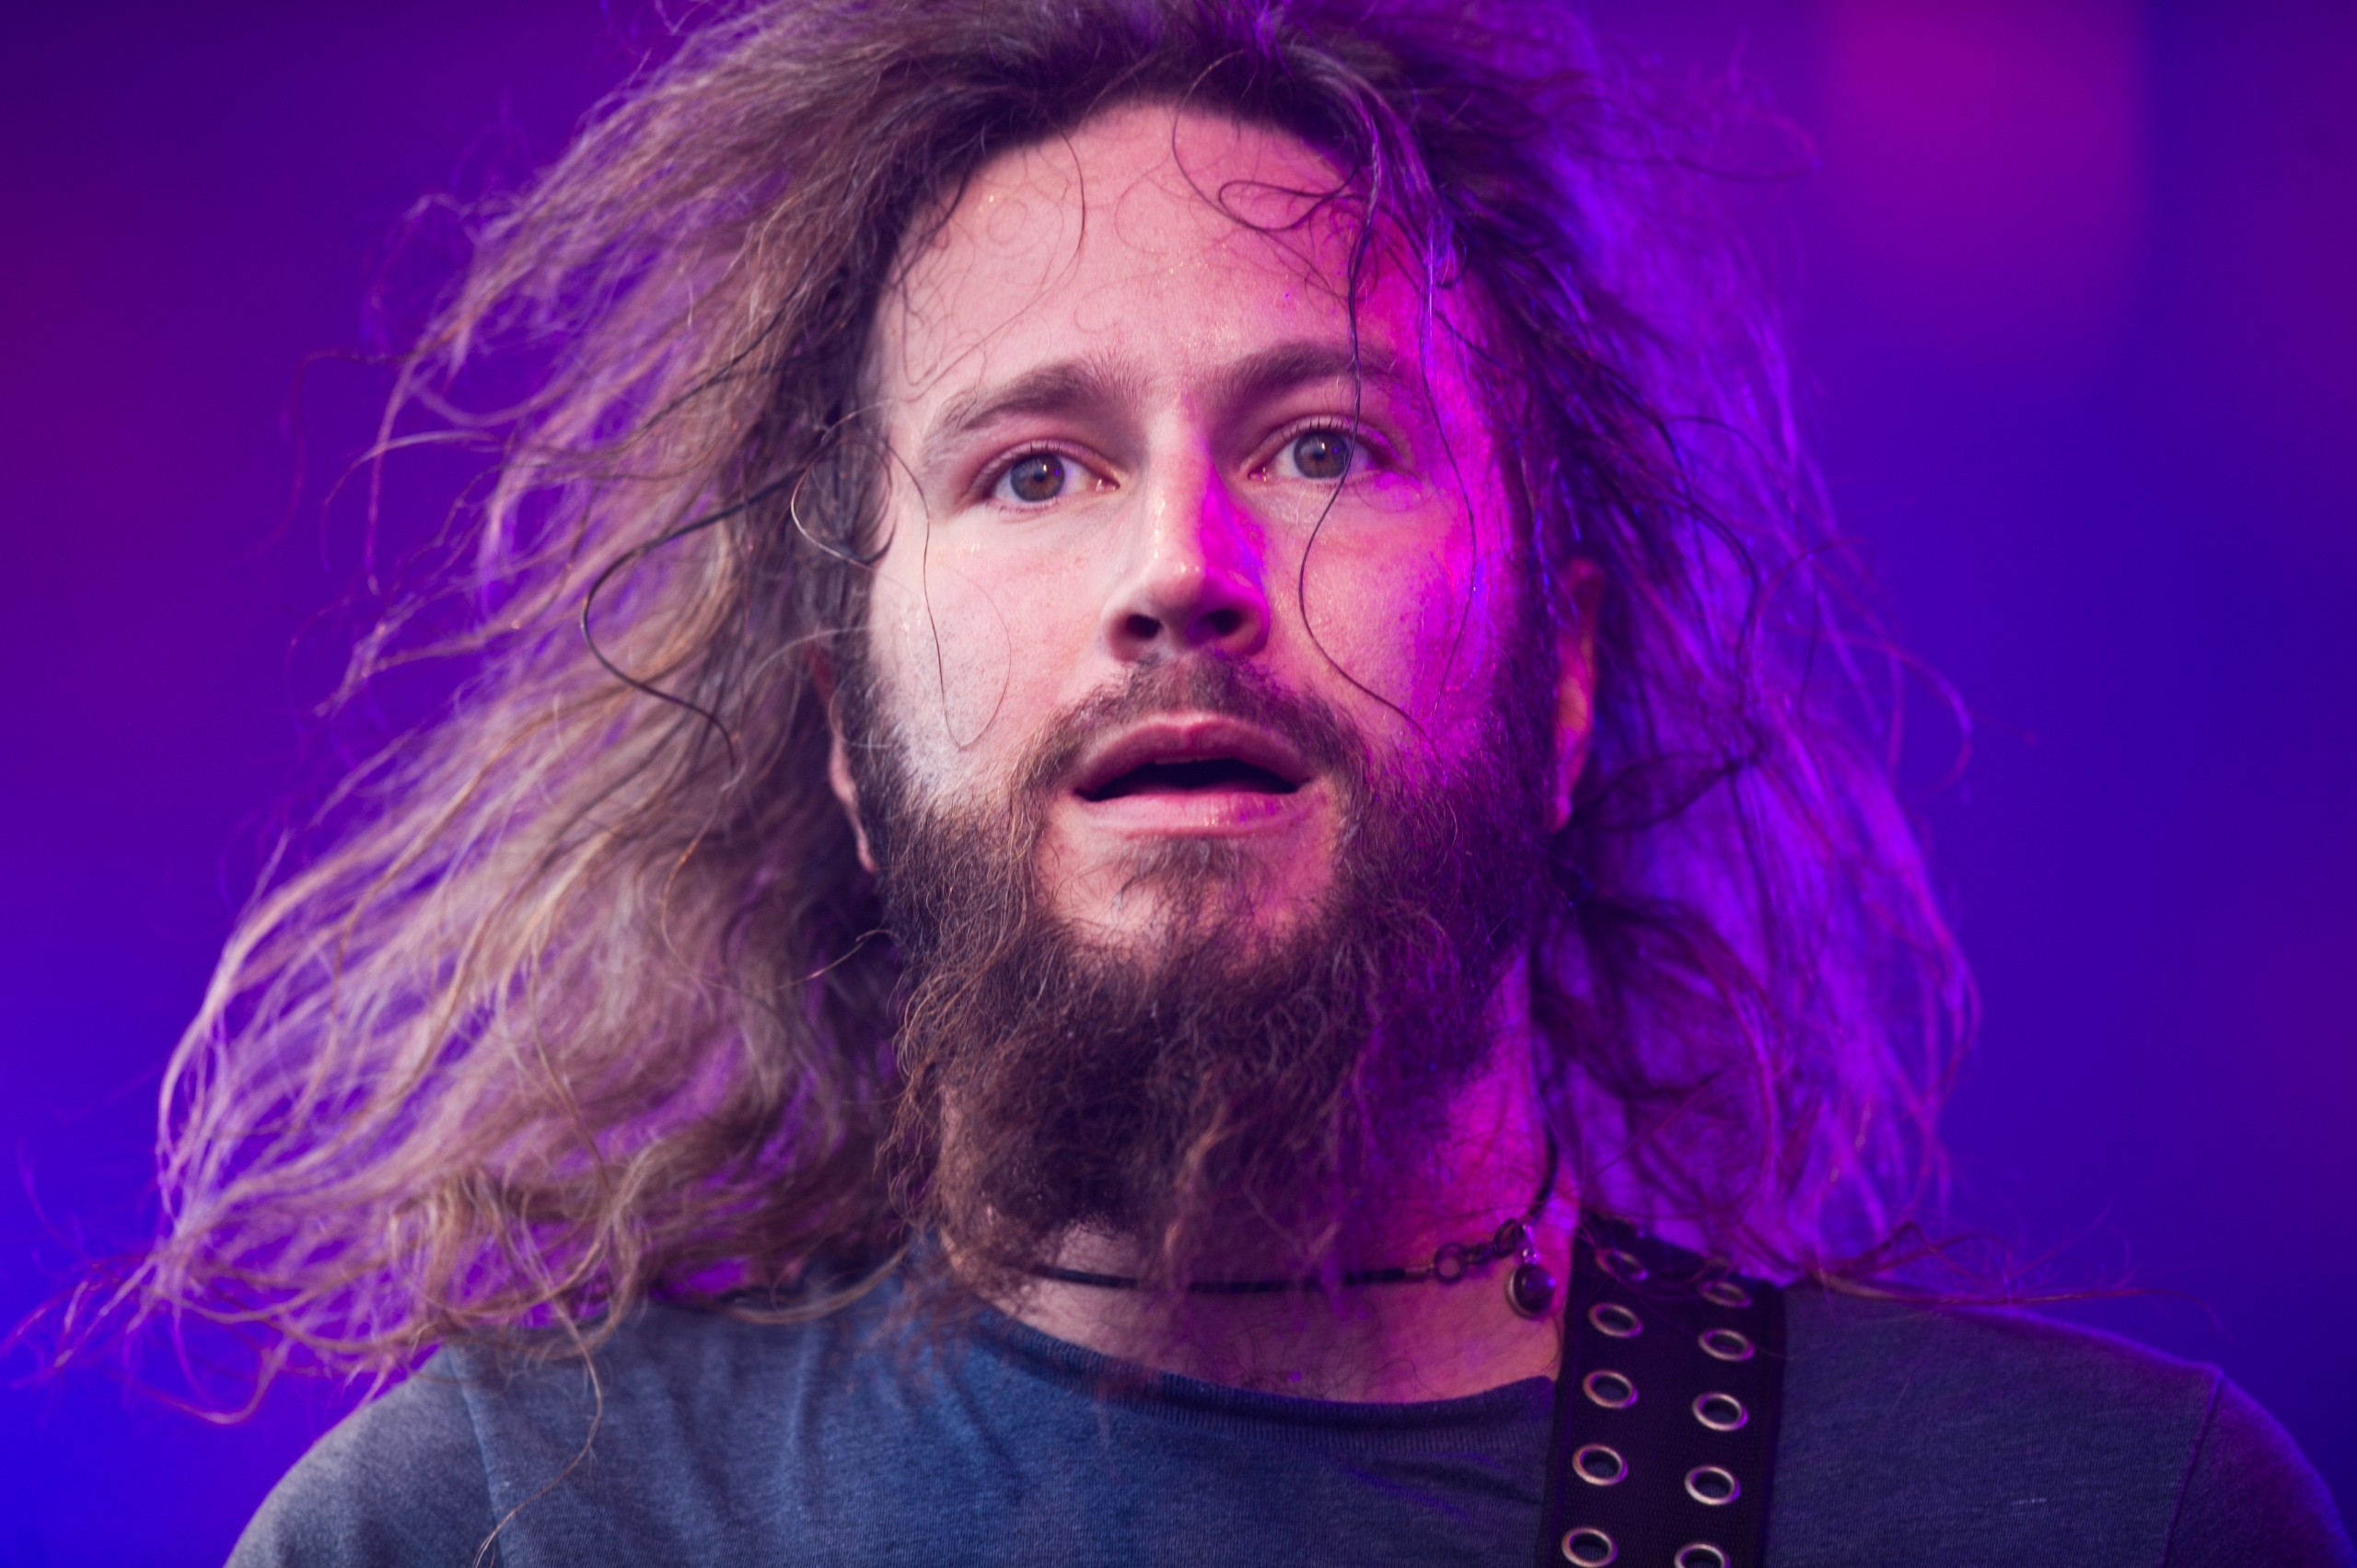 Mastodon And Gone Is Gone Bassist Troy Sanders Talked With Jordan Roos About His Groupies And New Mastodon